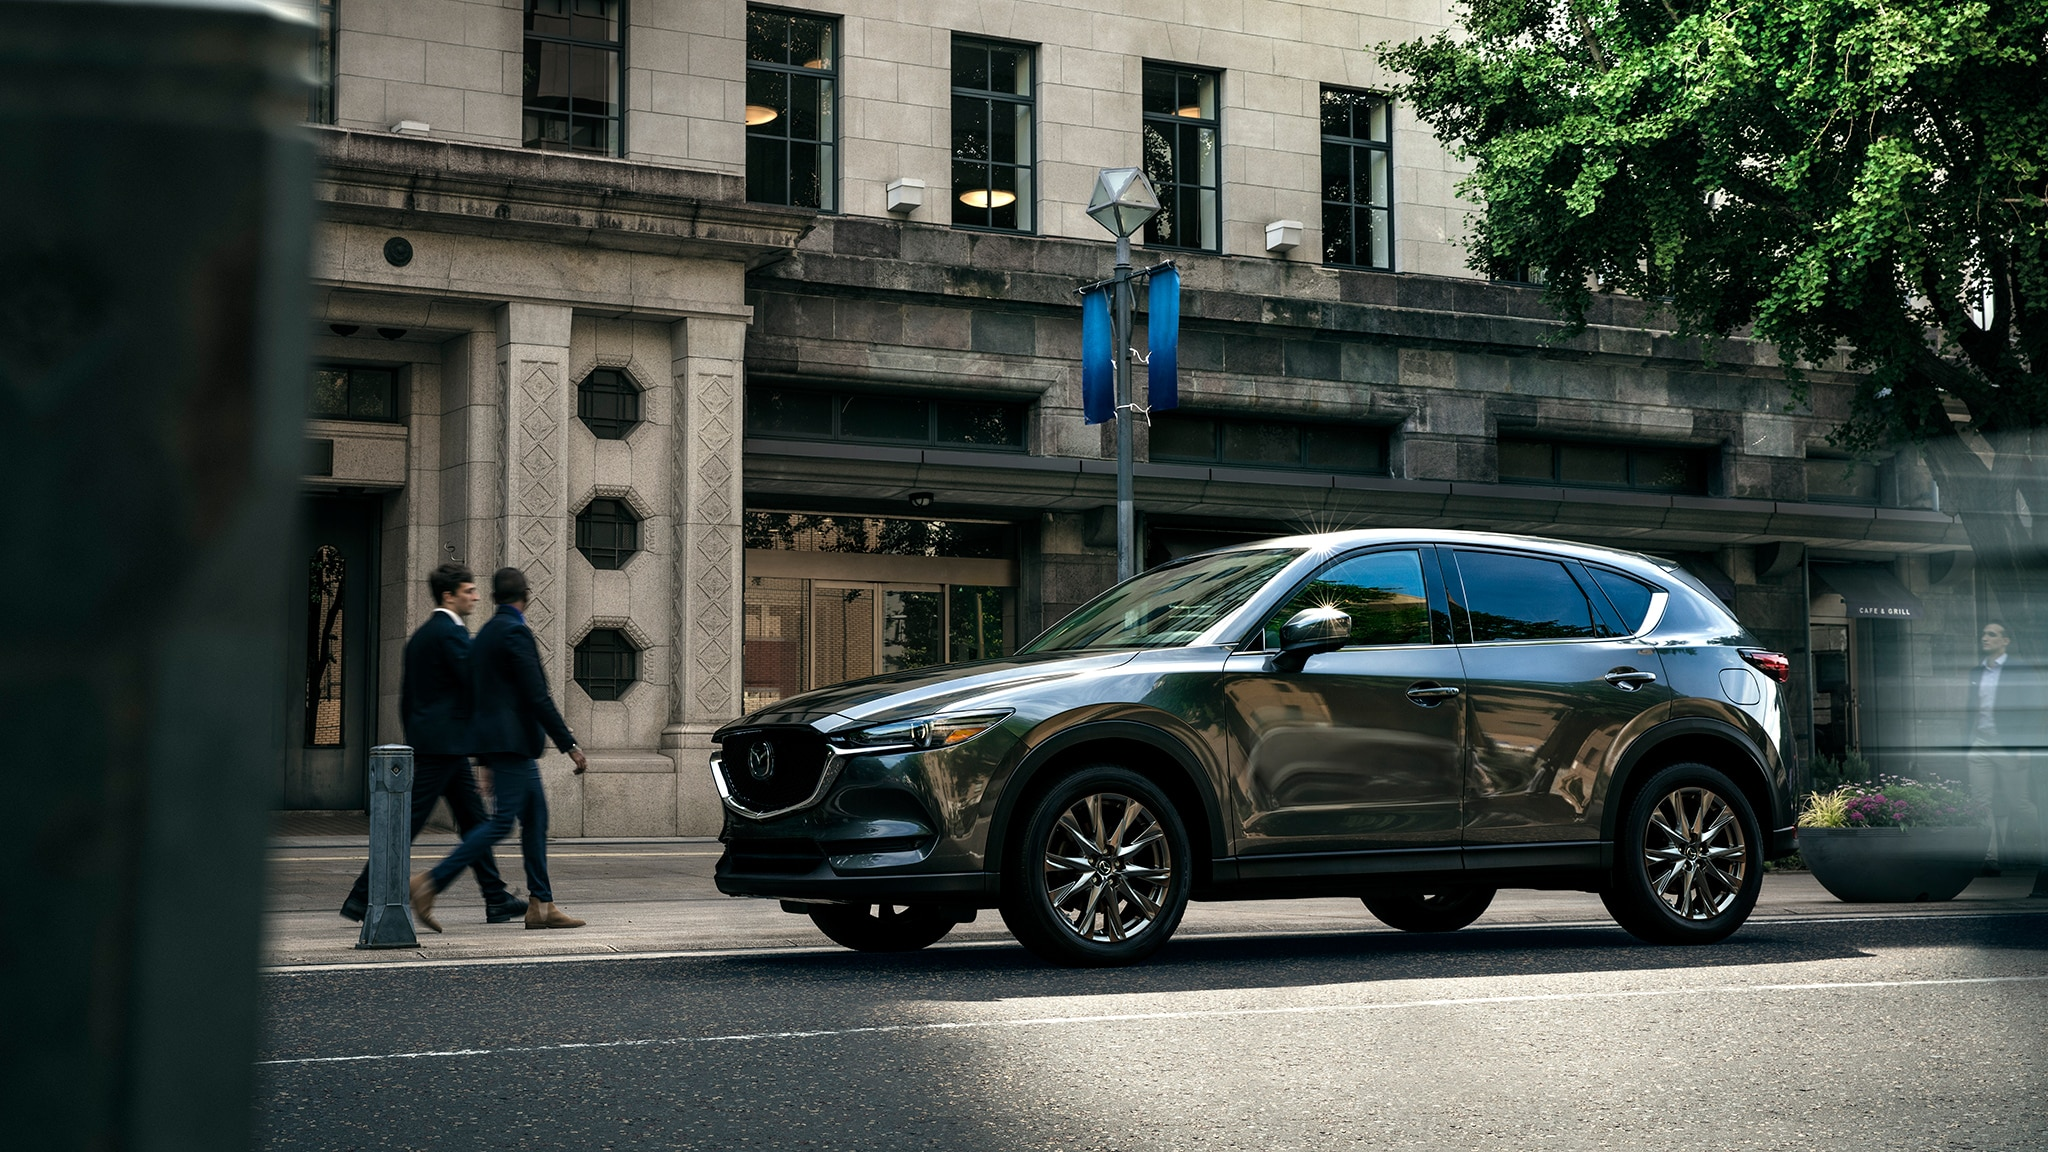 2019 Mazda CX 5 With Building